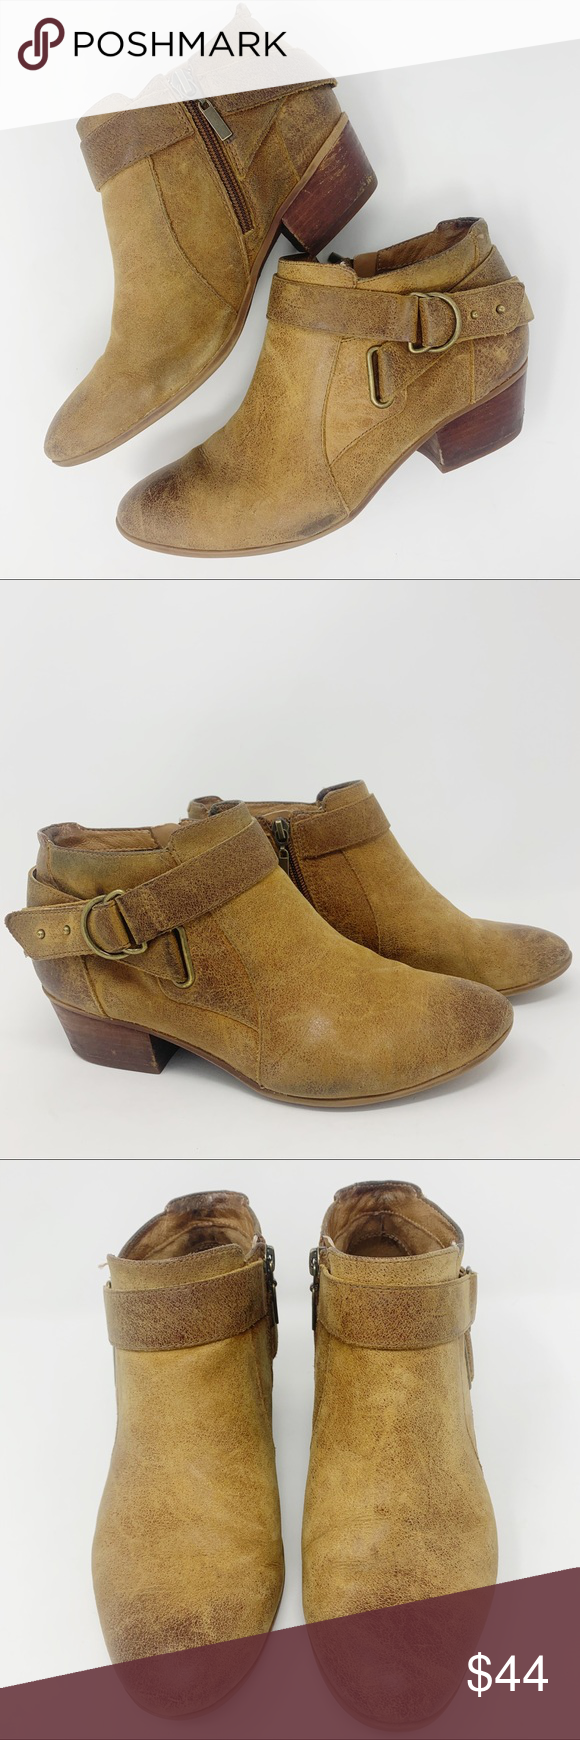 Clark's Artisan Tan Leather Ankle Boots Sz 7.5 Super cute and very well made Ankle Boots.   Perfect fall/winter boots to wear with skinny jeans.   Excellent pre-owned condition, lots of life left!   Smoke free home!   Bundle and save! Clarks Shoes Ankle Boots & Booties #skinnyjeansandankleboots